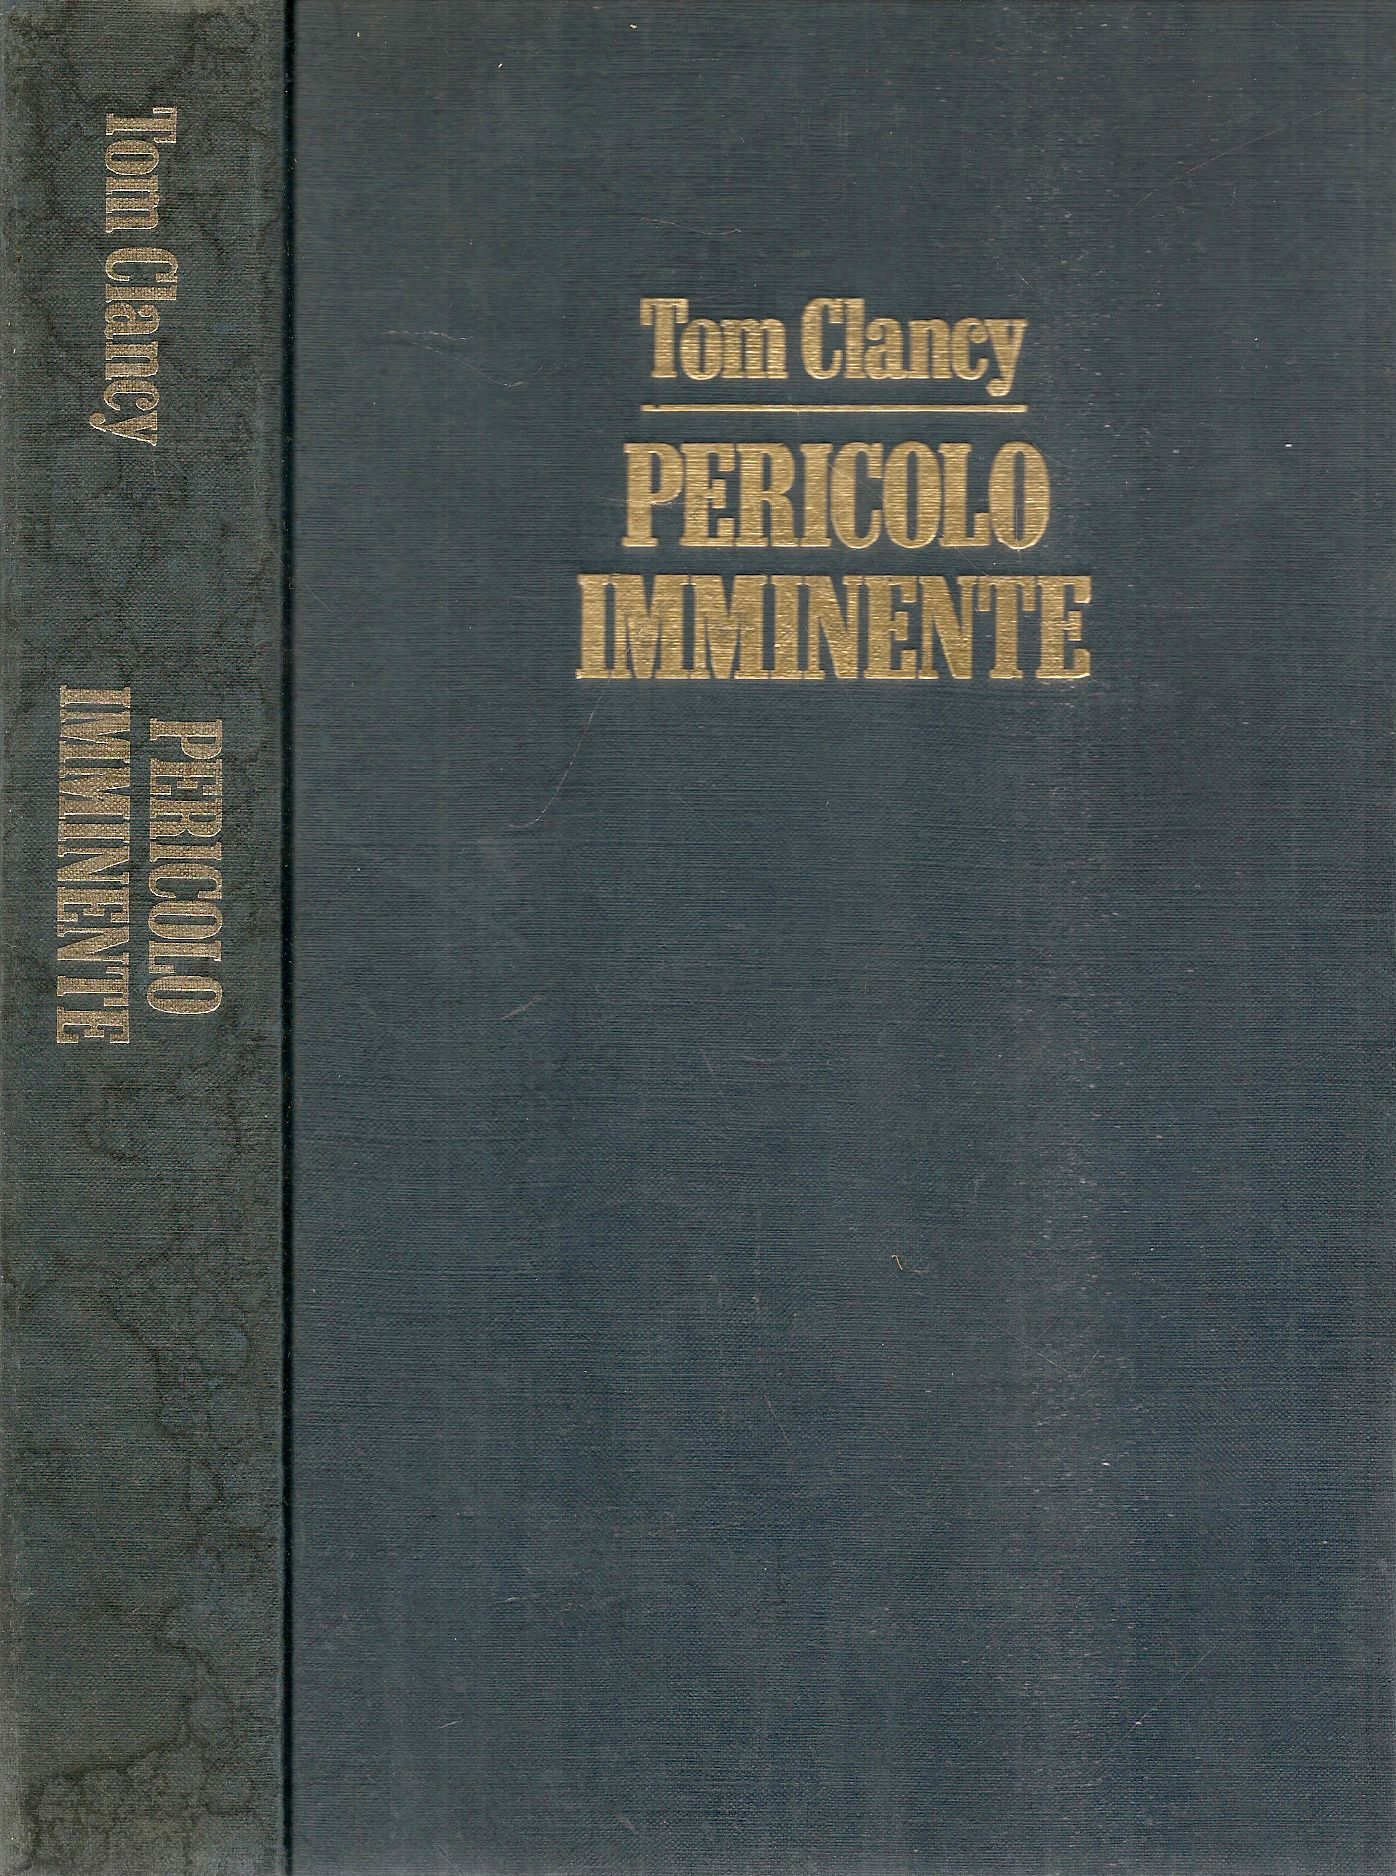 PERICOLO IMMINENTE - TOM CLANCY - ED. CLUB 1991